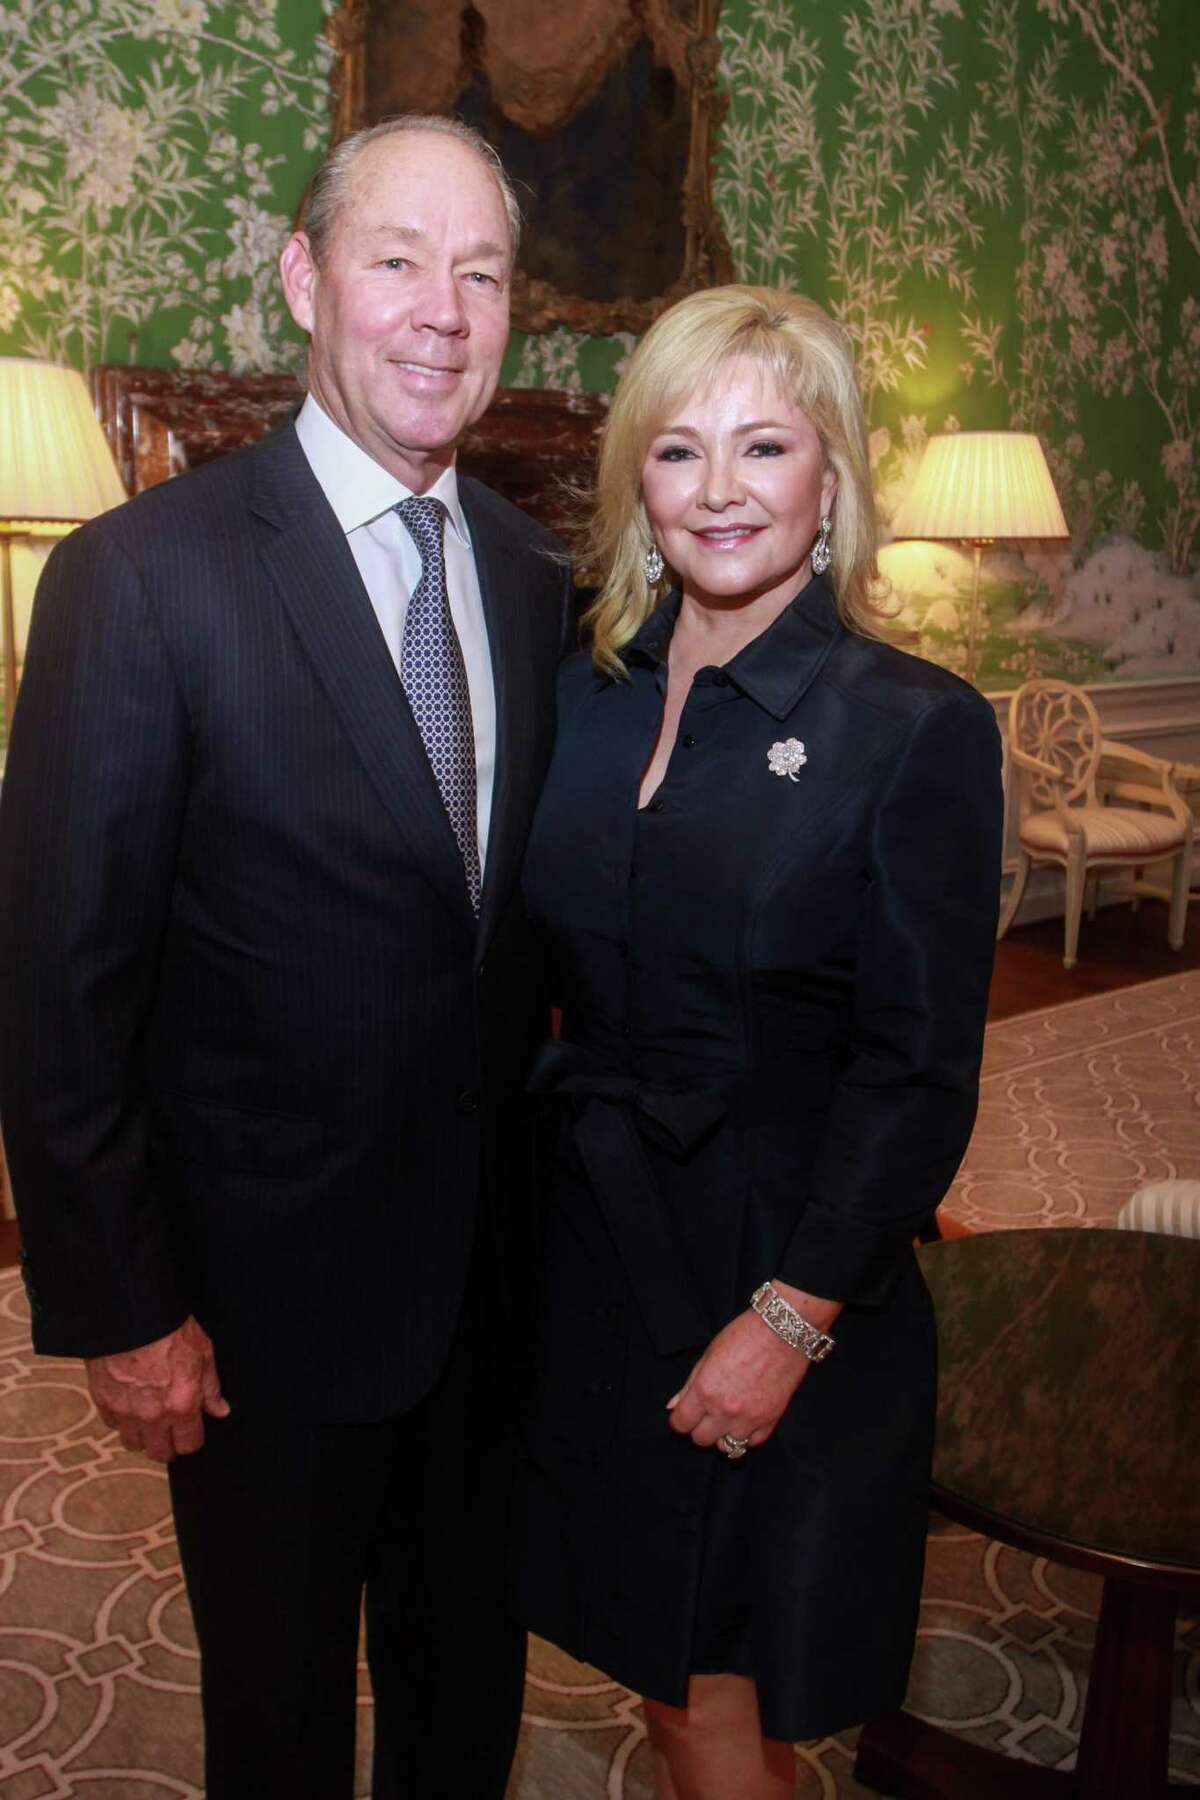 Honorees Jim and Whitney Crane at the Jubilee of Caring gala at River Oaks Country Club on January 15, 2020.